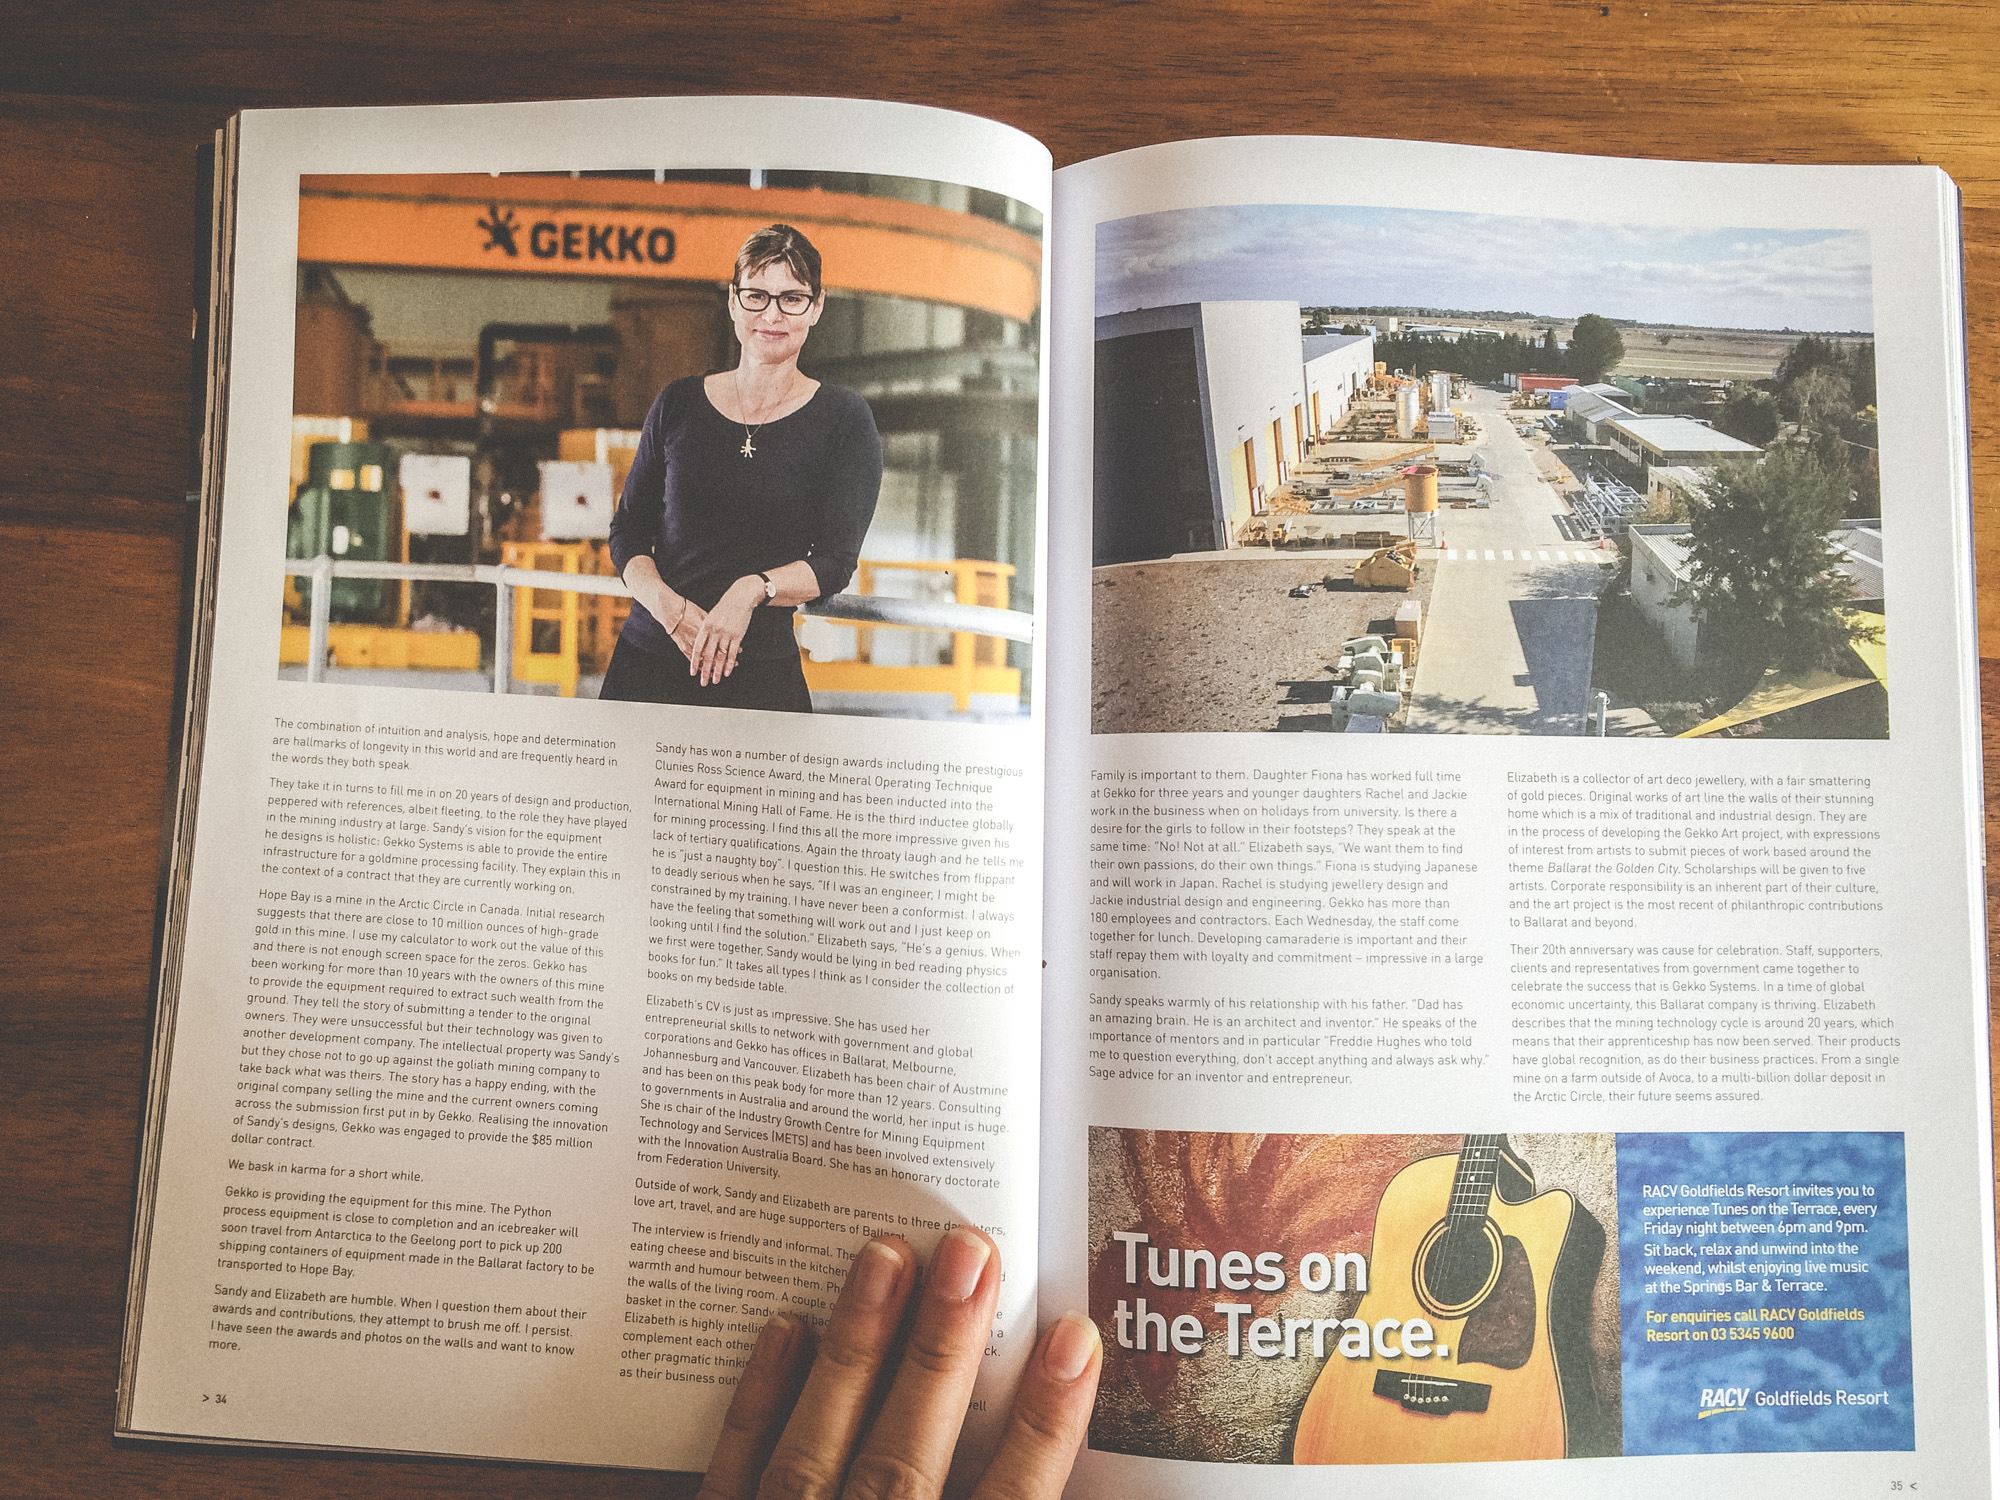 Ballarat Lifestyle Magazine Elizabeth Lewis-Gray CEO GEKKO SYSTEMS Aldona Kmiec Photography editorial portrait